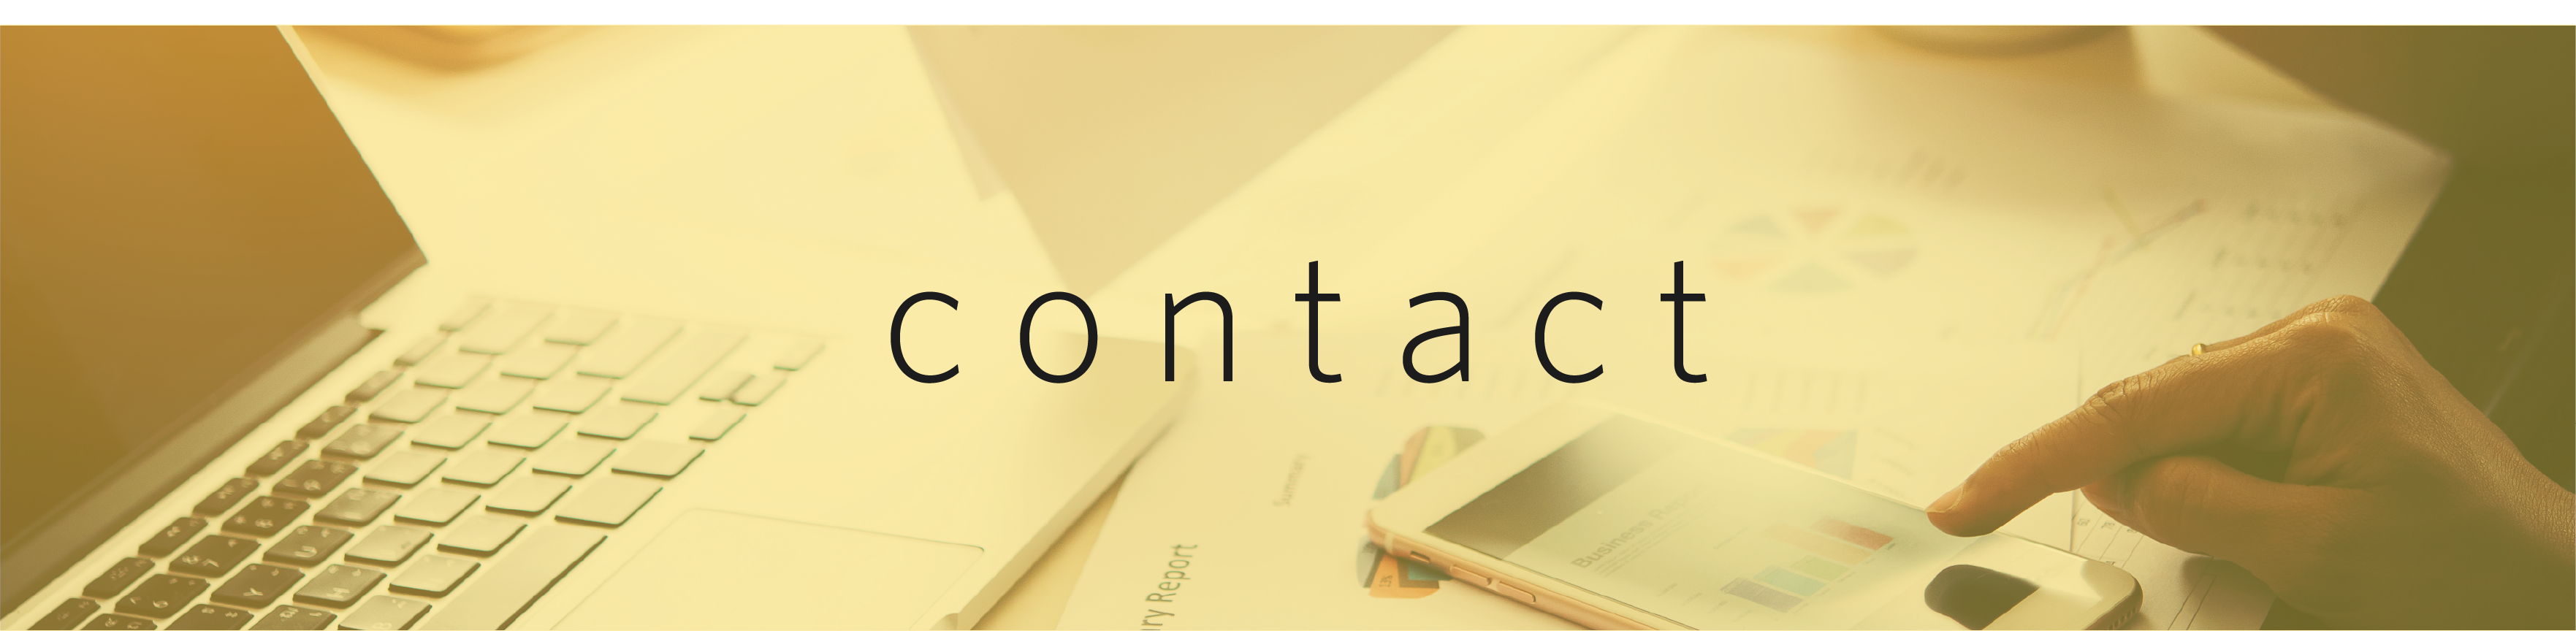 contact banner _ final@3x.png